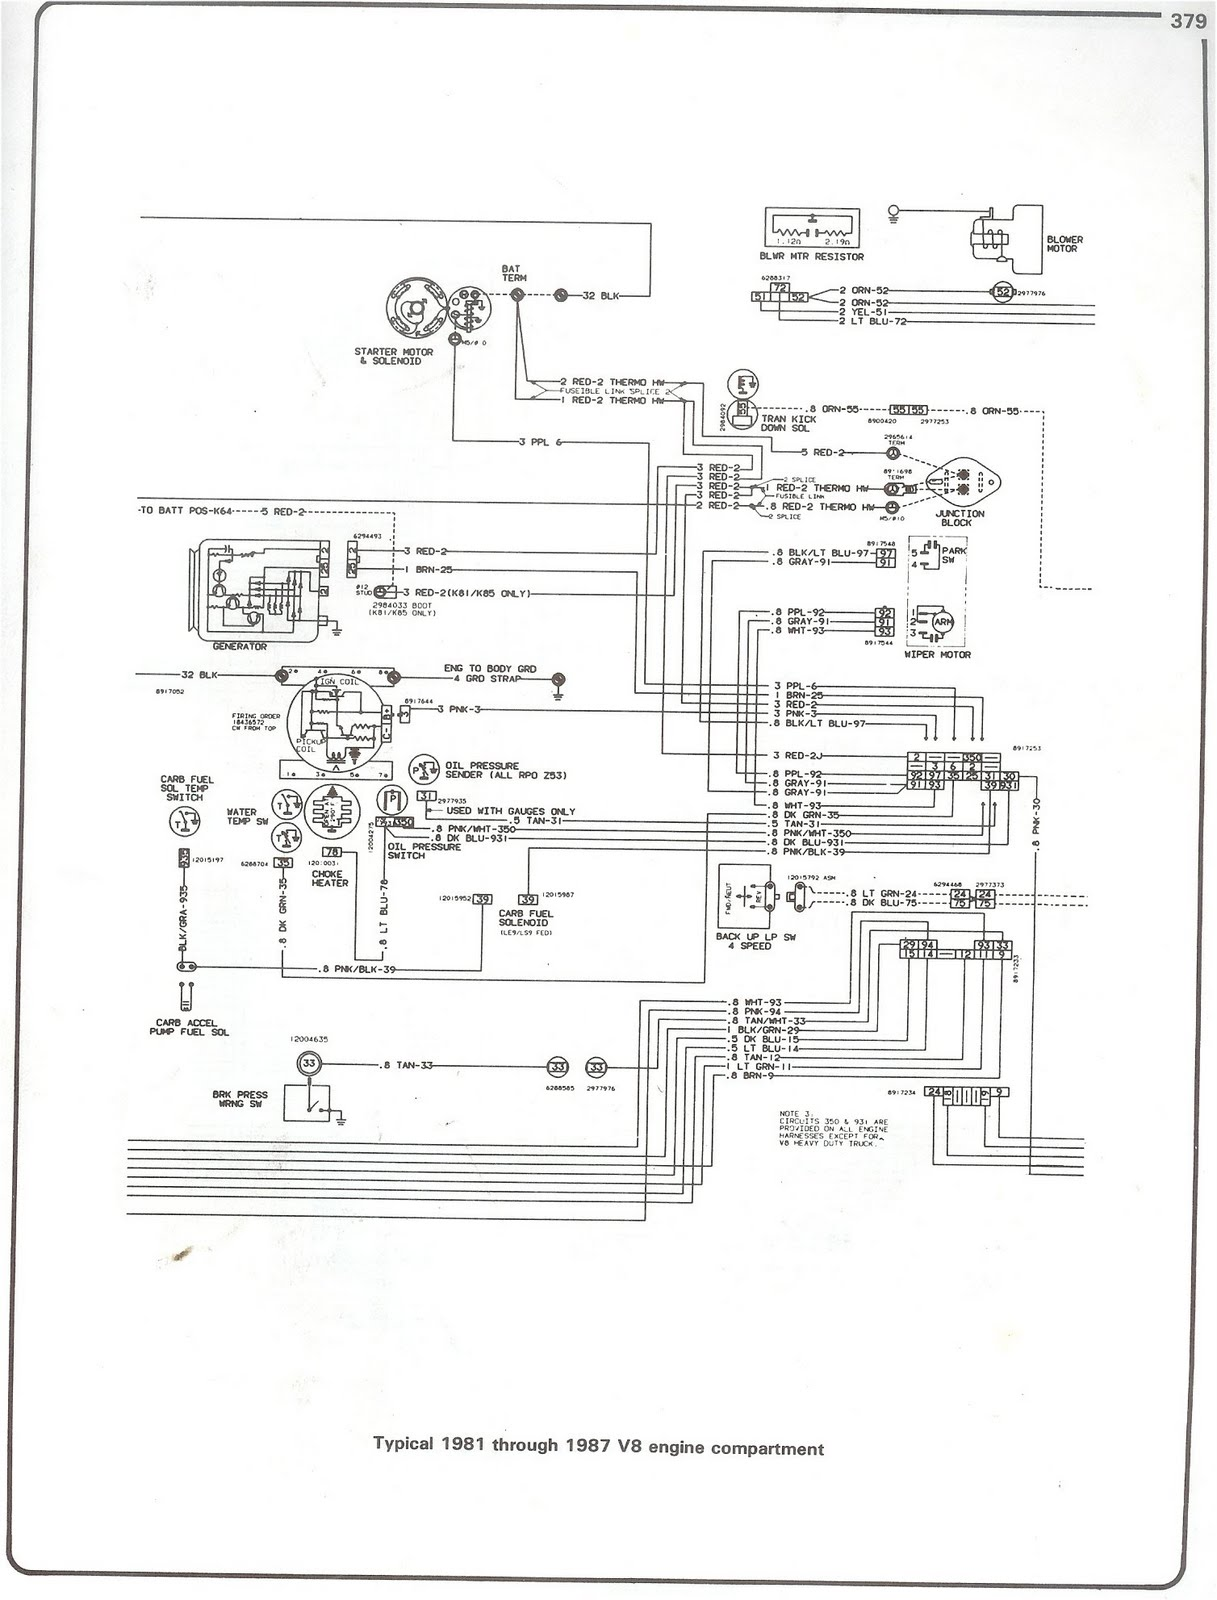 91 Gm Fuse Box Diagram | Wiring Liry  Silverado Fuse Box Diagram on